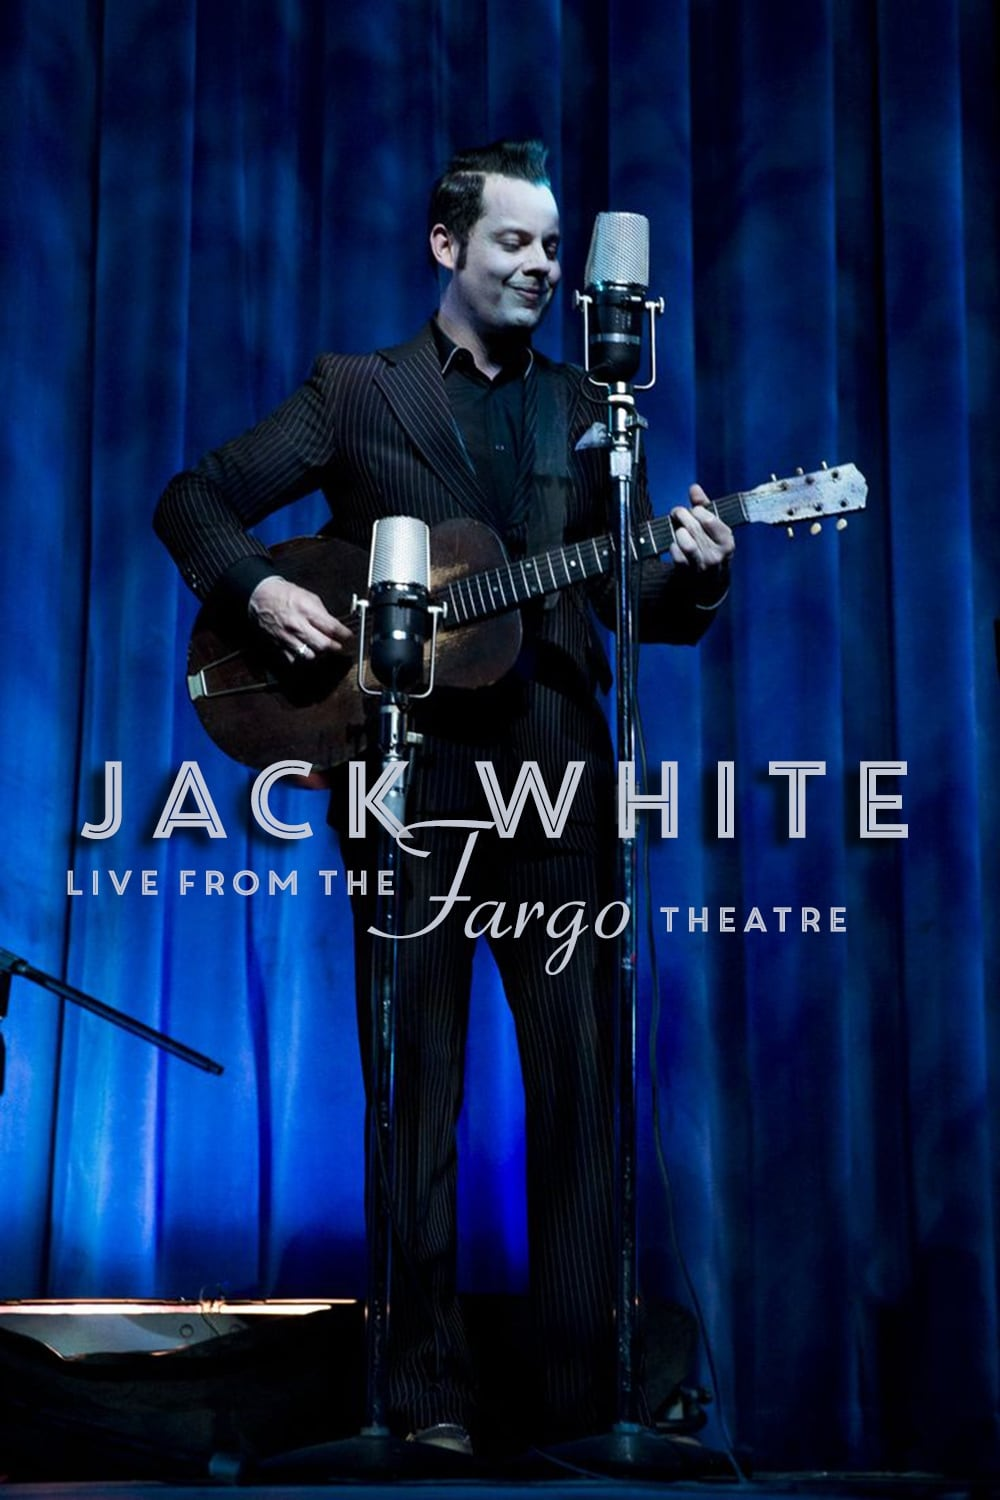 Jack White - Live from the Fargo Theatre (2015)